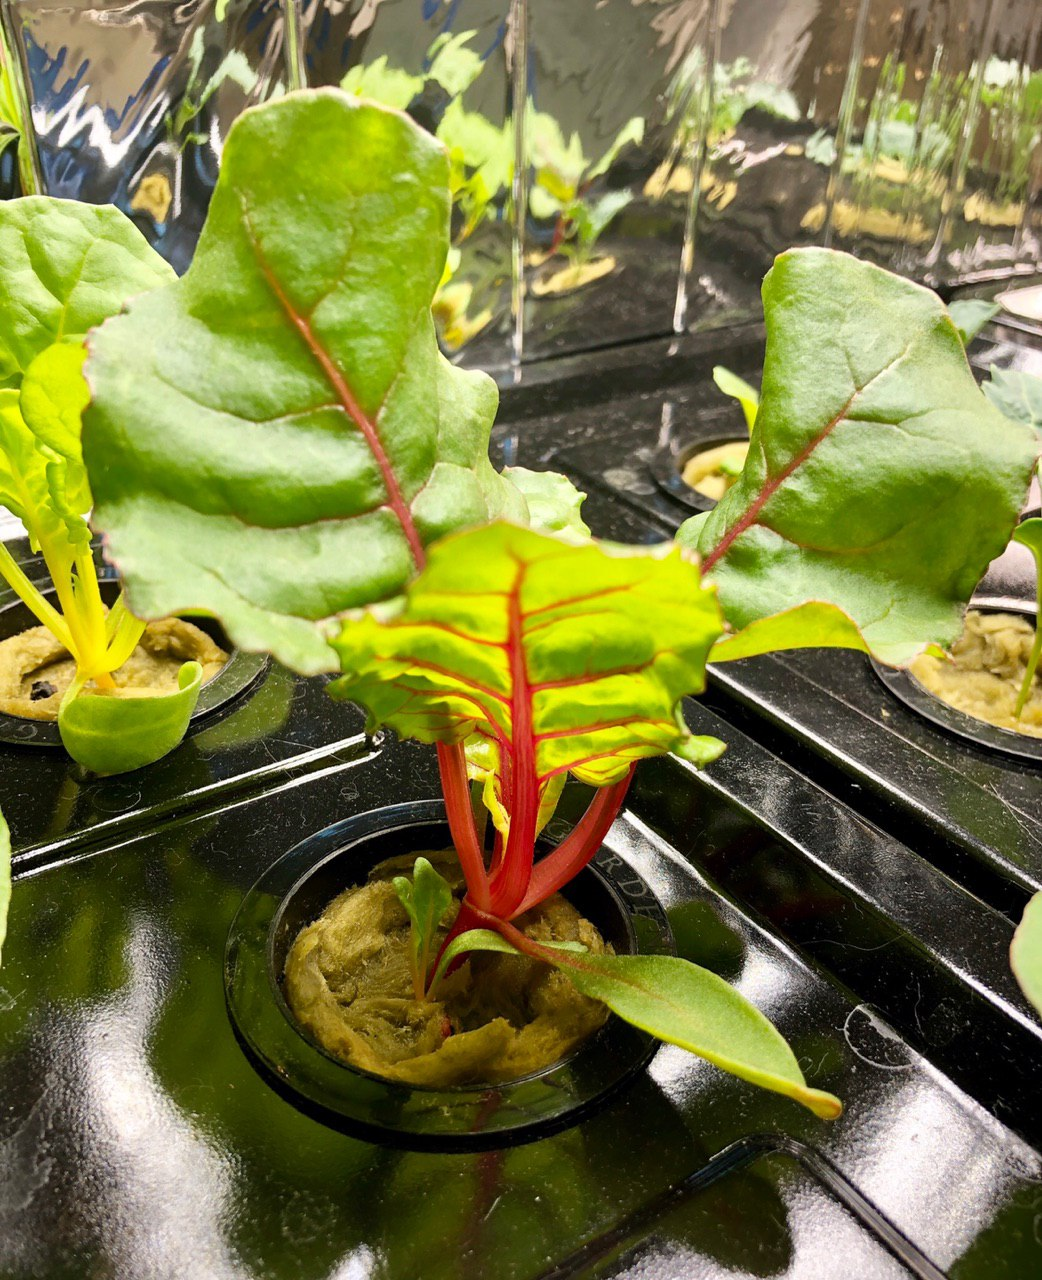 Bright Lights Swiss Chard Grown In Kratky Hydroponics Container, Week 2